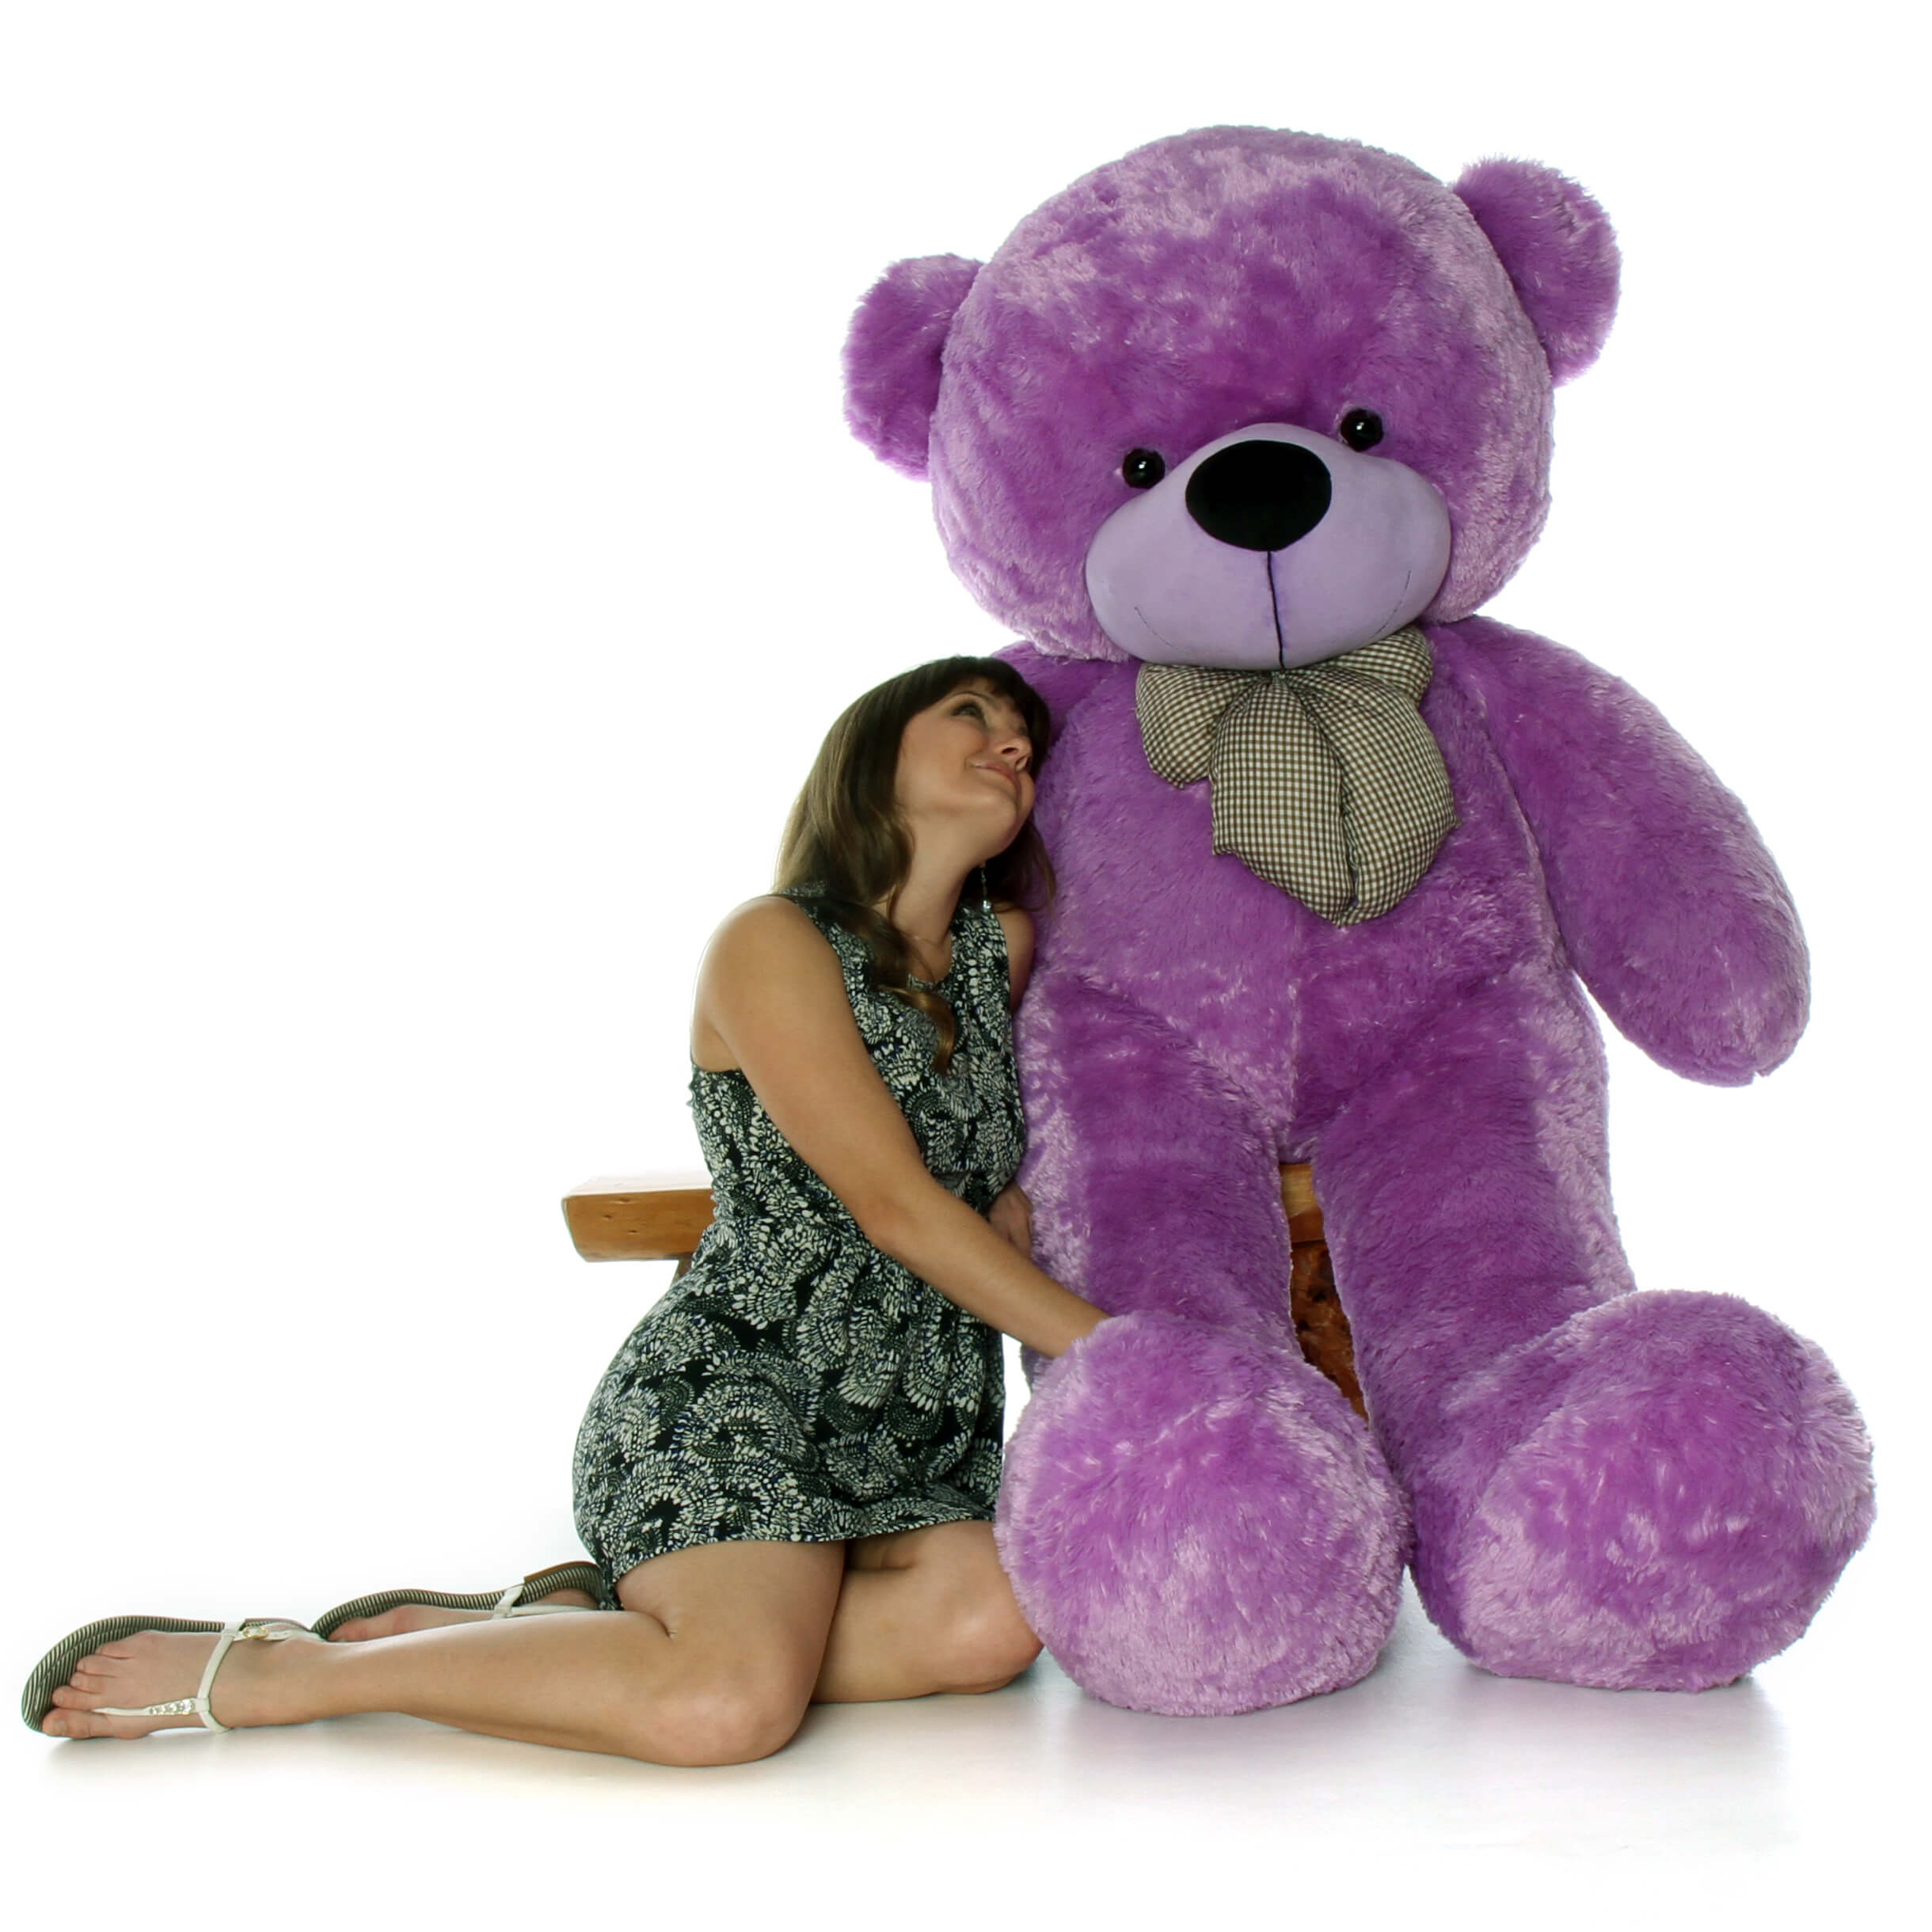 6ft-purple-life-size-teddy-deedee-cuddles-is-enormously-huge-1.jpg